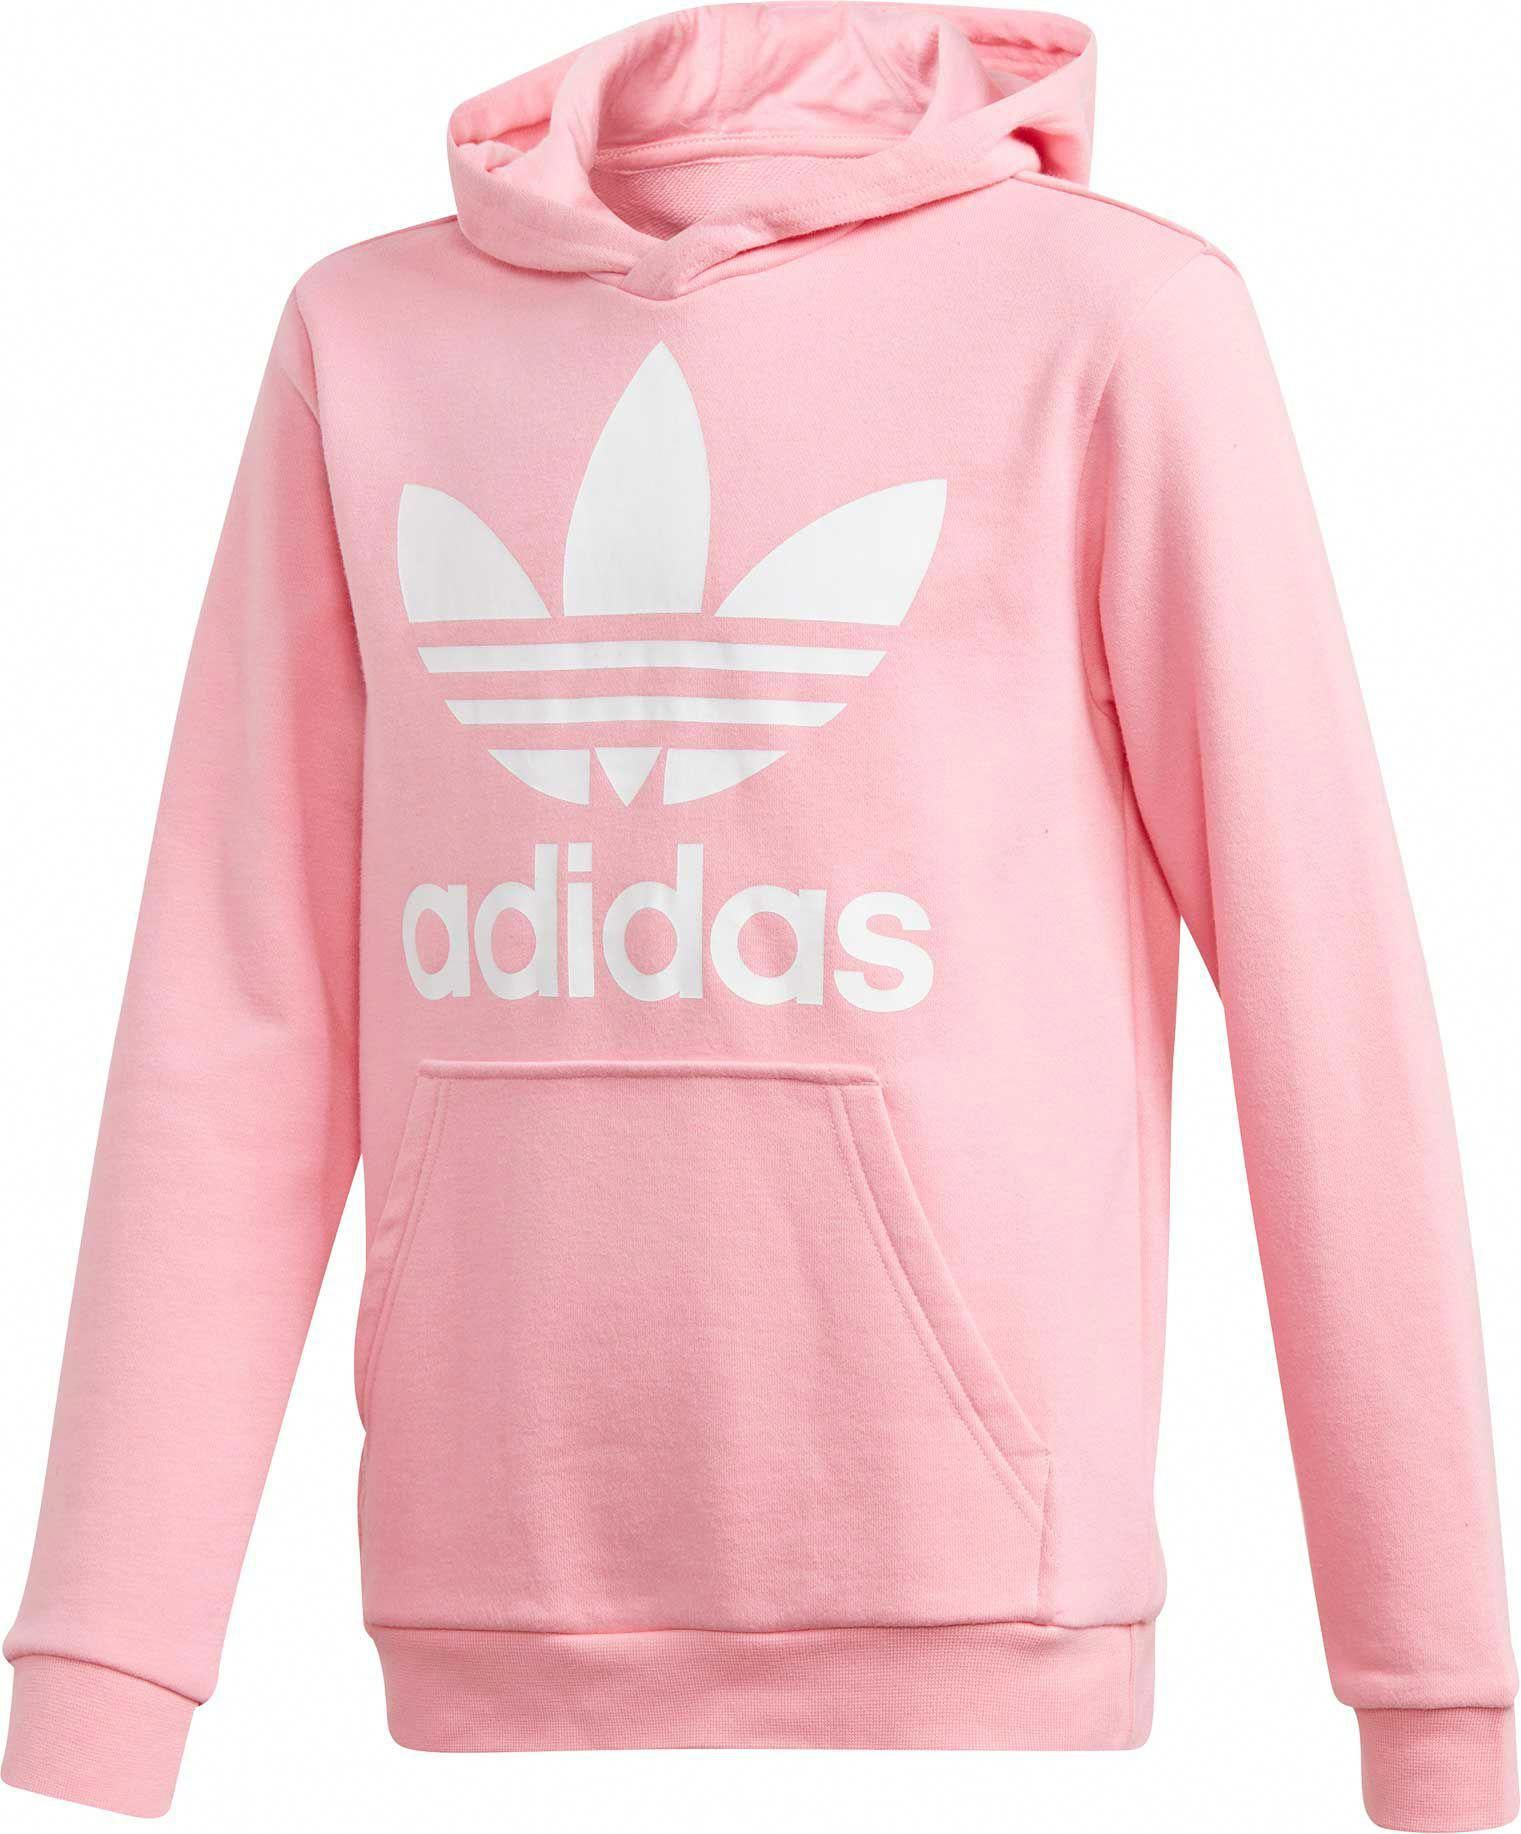 adidas Originals Girls' Trefoil Hoodie, Light PinkWhite